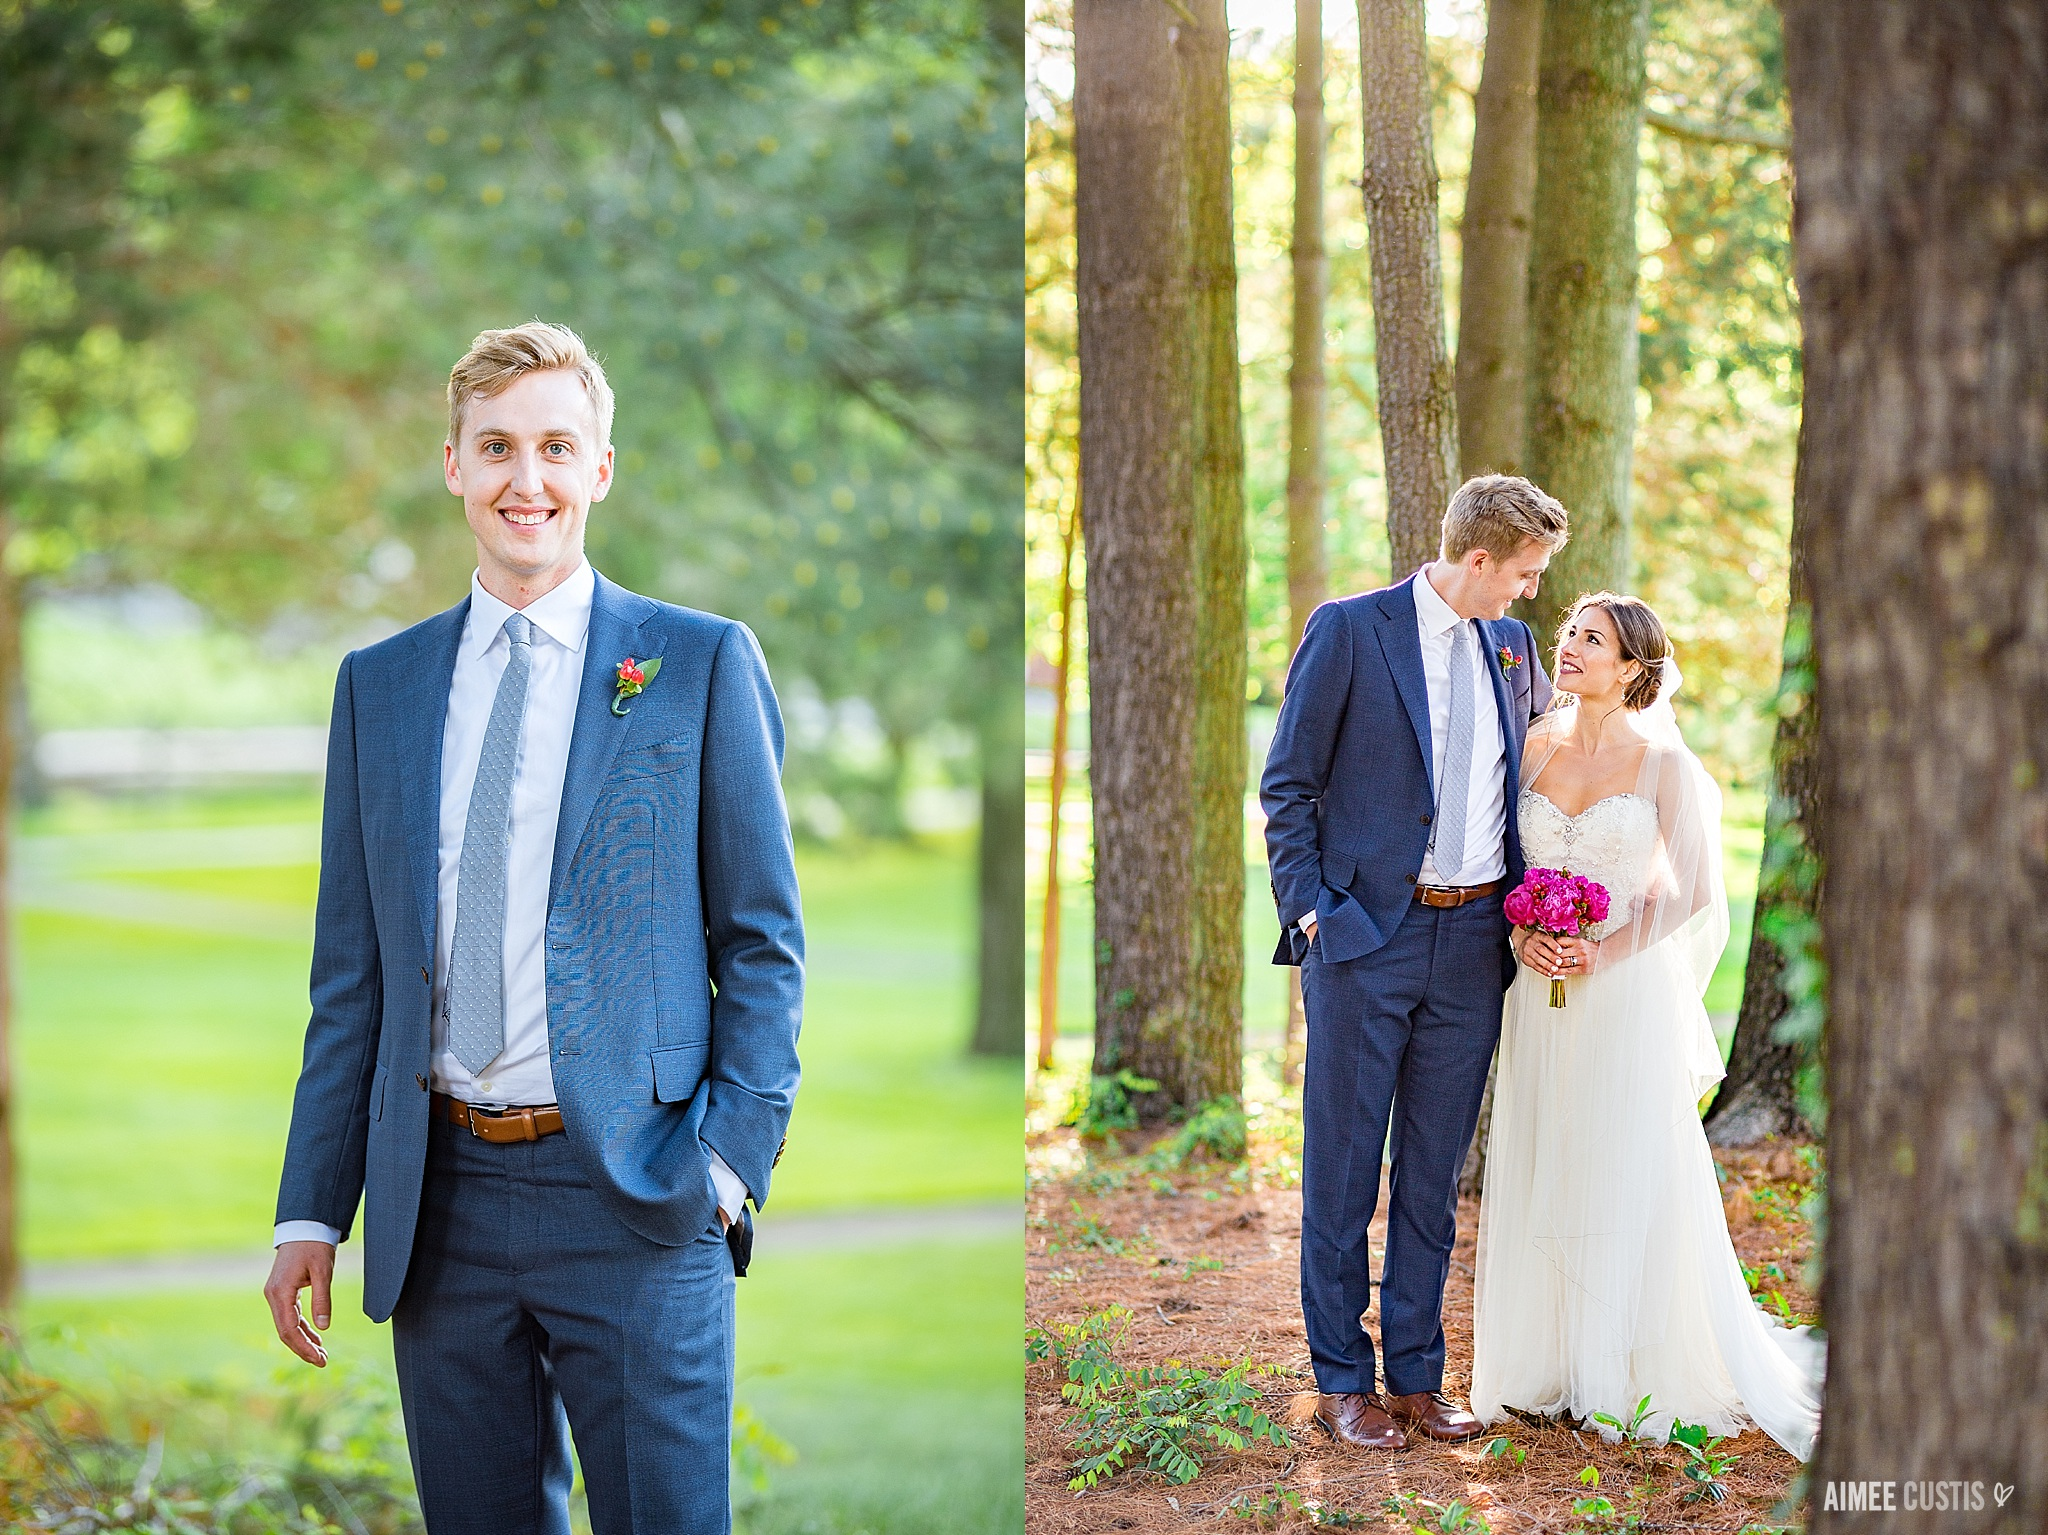 The Barns at Wolf Trap Childrens Theater wedding photography Chris Langford for Aimee Custis Photography